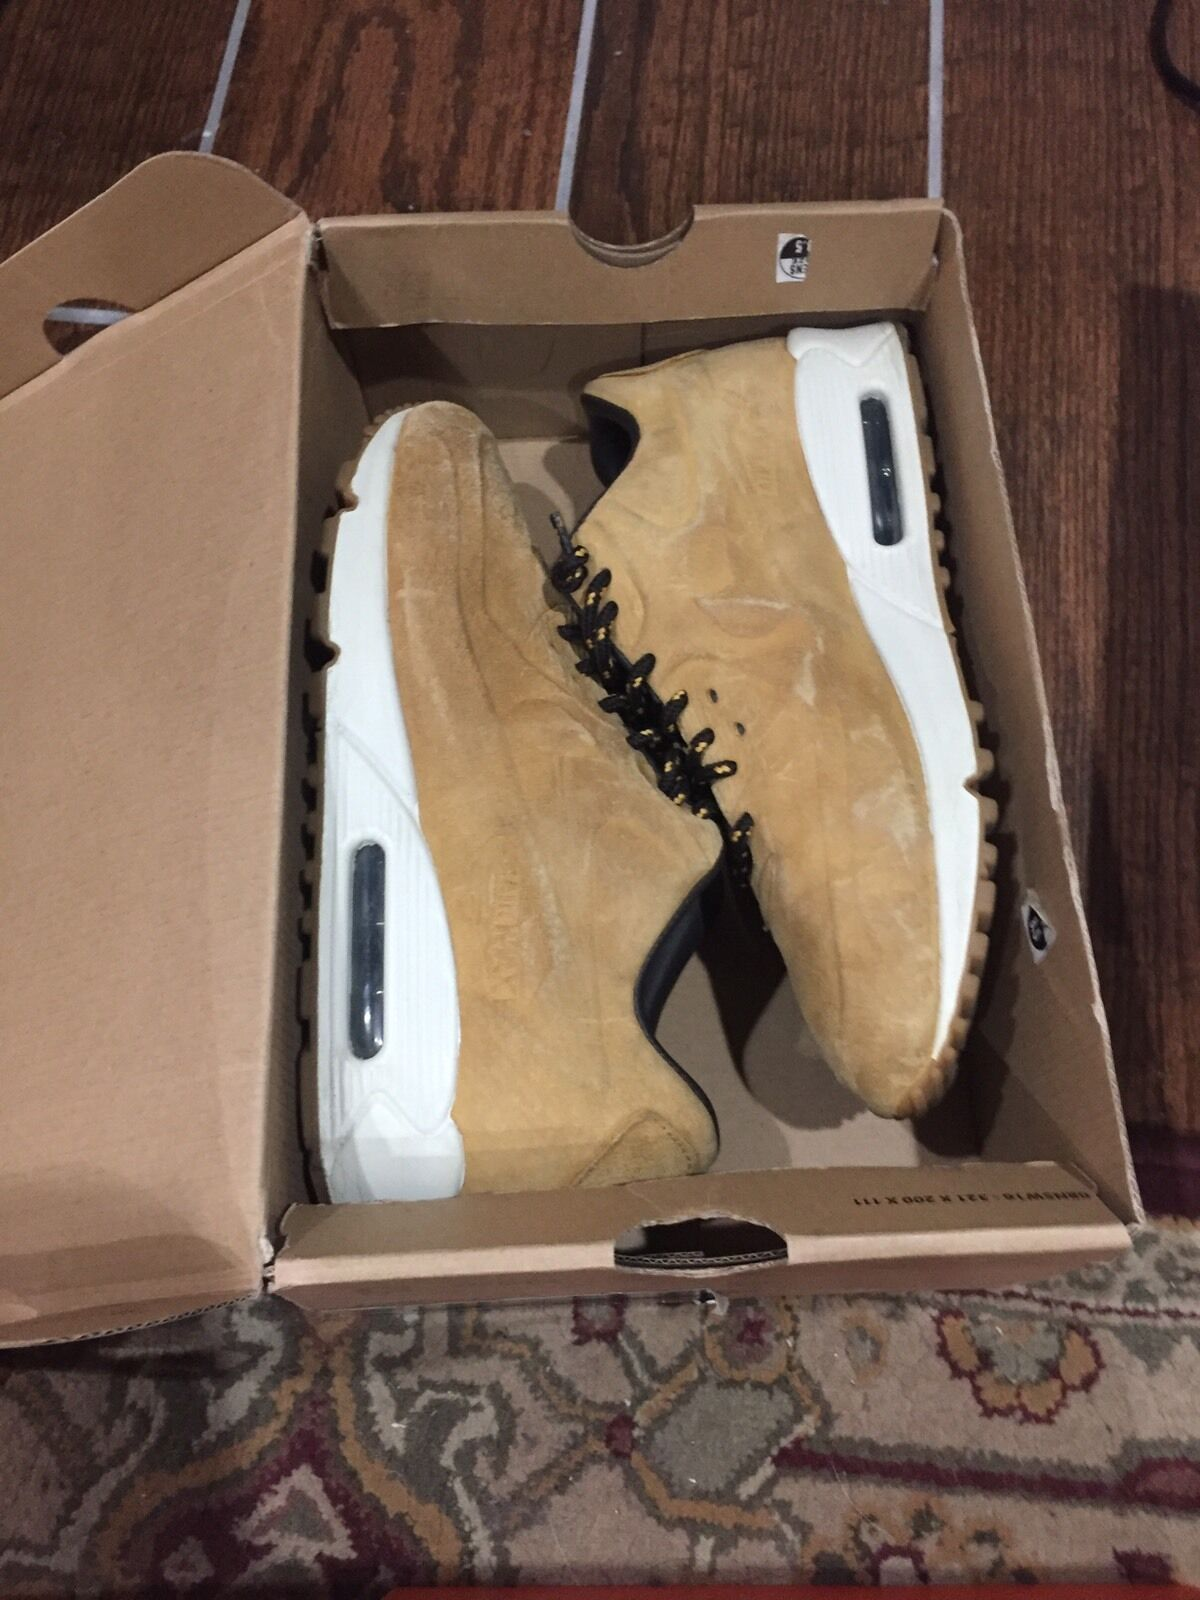 NIKE AIR MAX 90 PRM VT QS SZ 8.5 WHEAT HAYSTACK BIRCH NUBUCK 486988 700